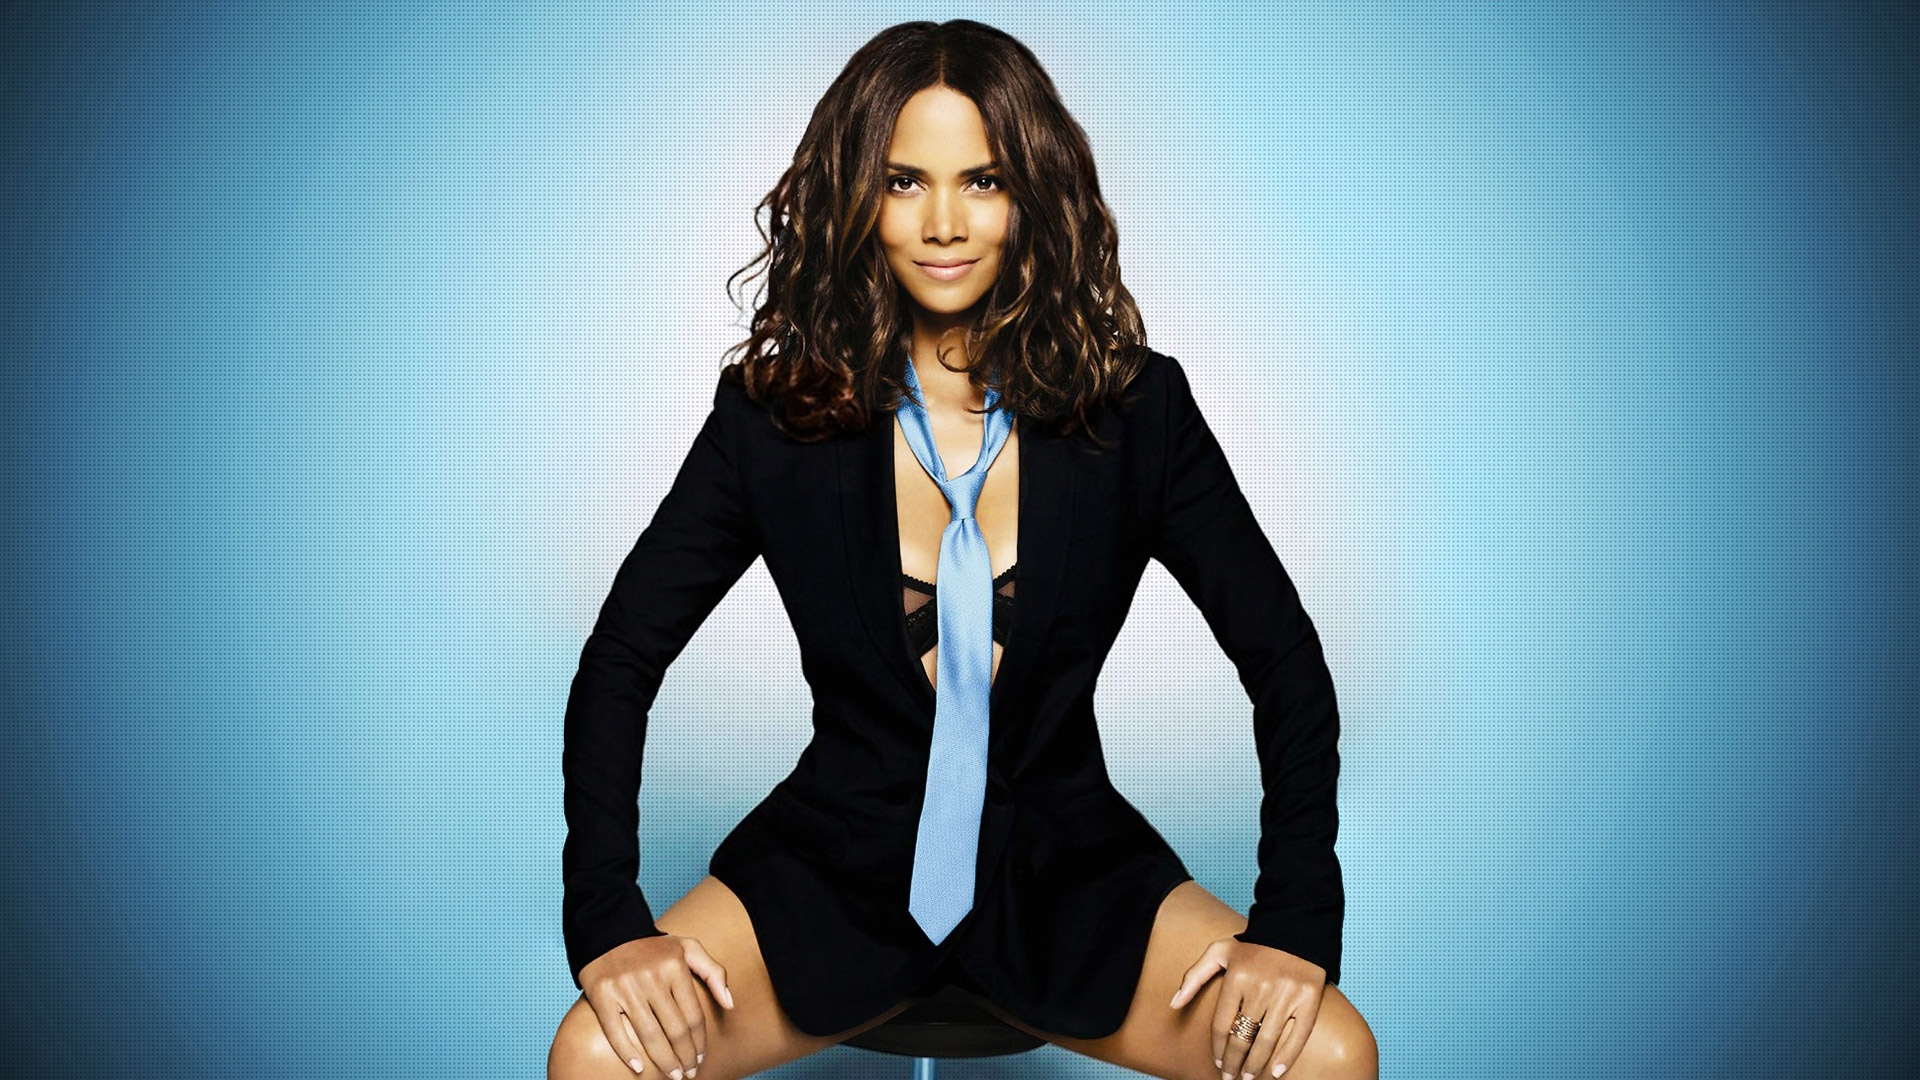 halle berry wallpapers 1920 - photo #22